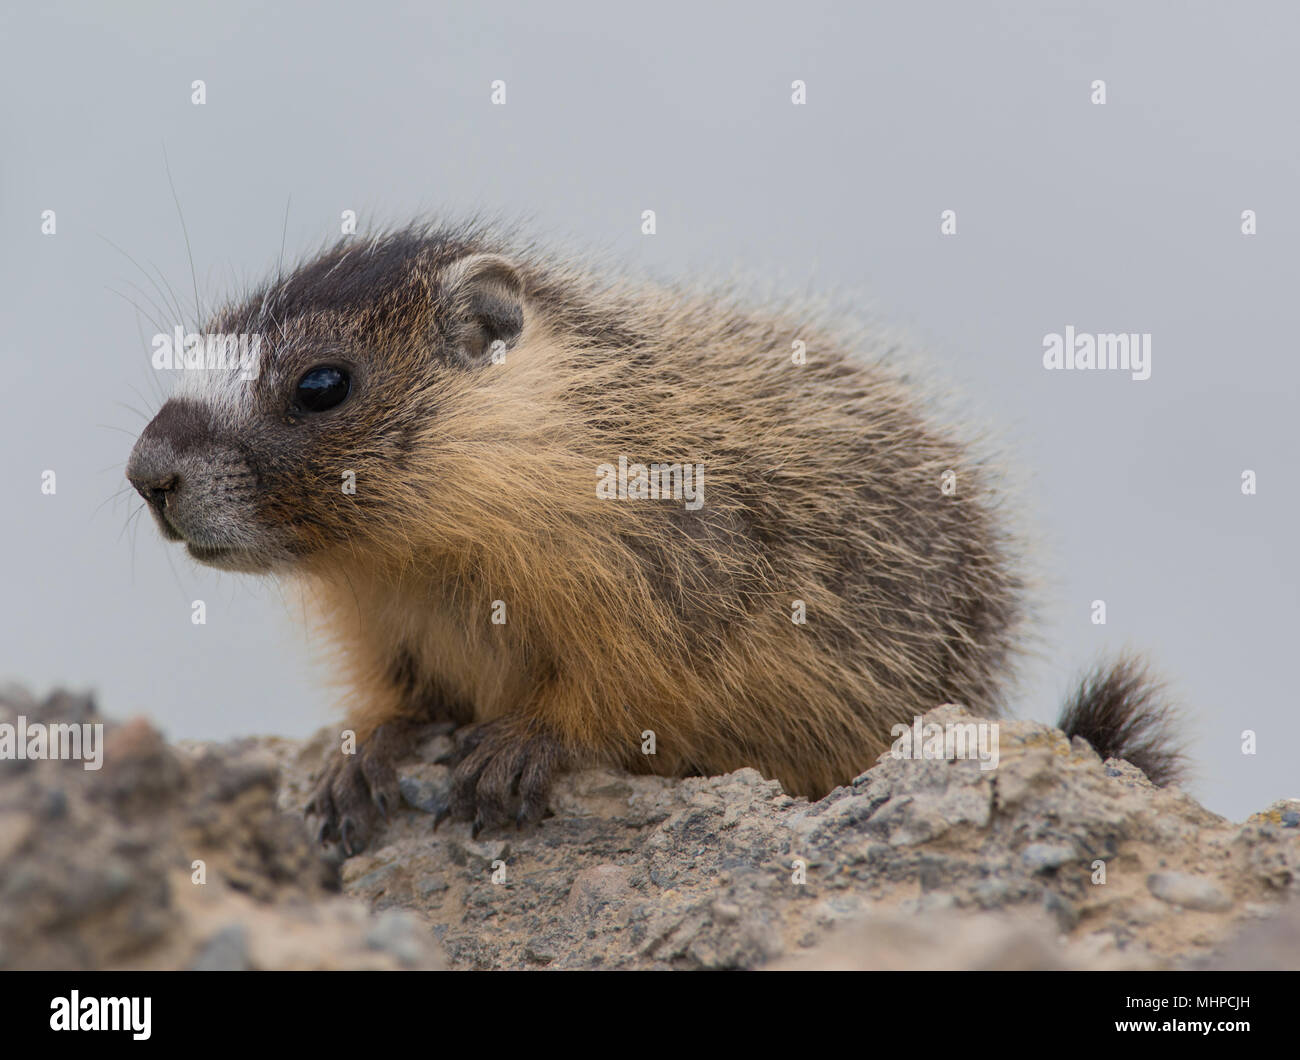 Close up of a Yellow-Bellied Marmot (Marmota flaviventris) in British Columbia Canada - Stock Image